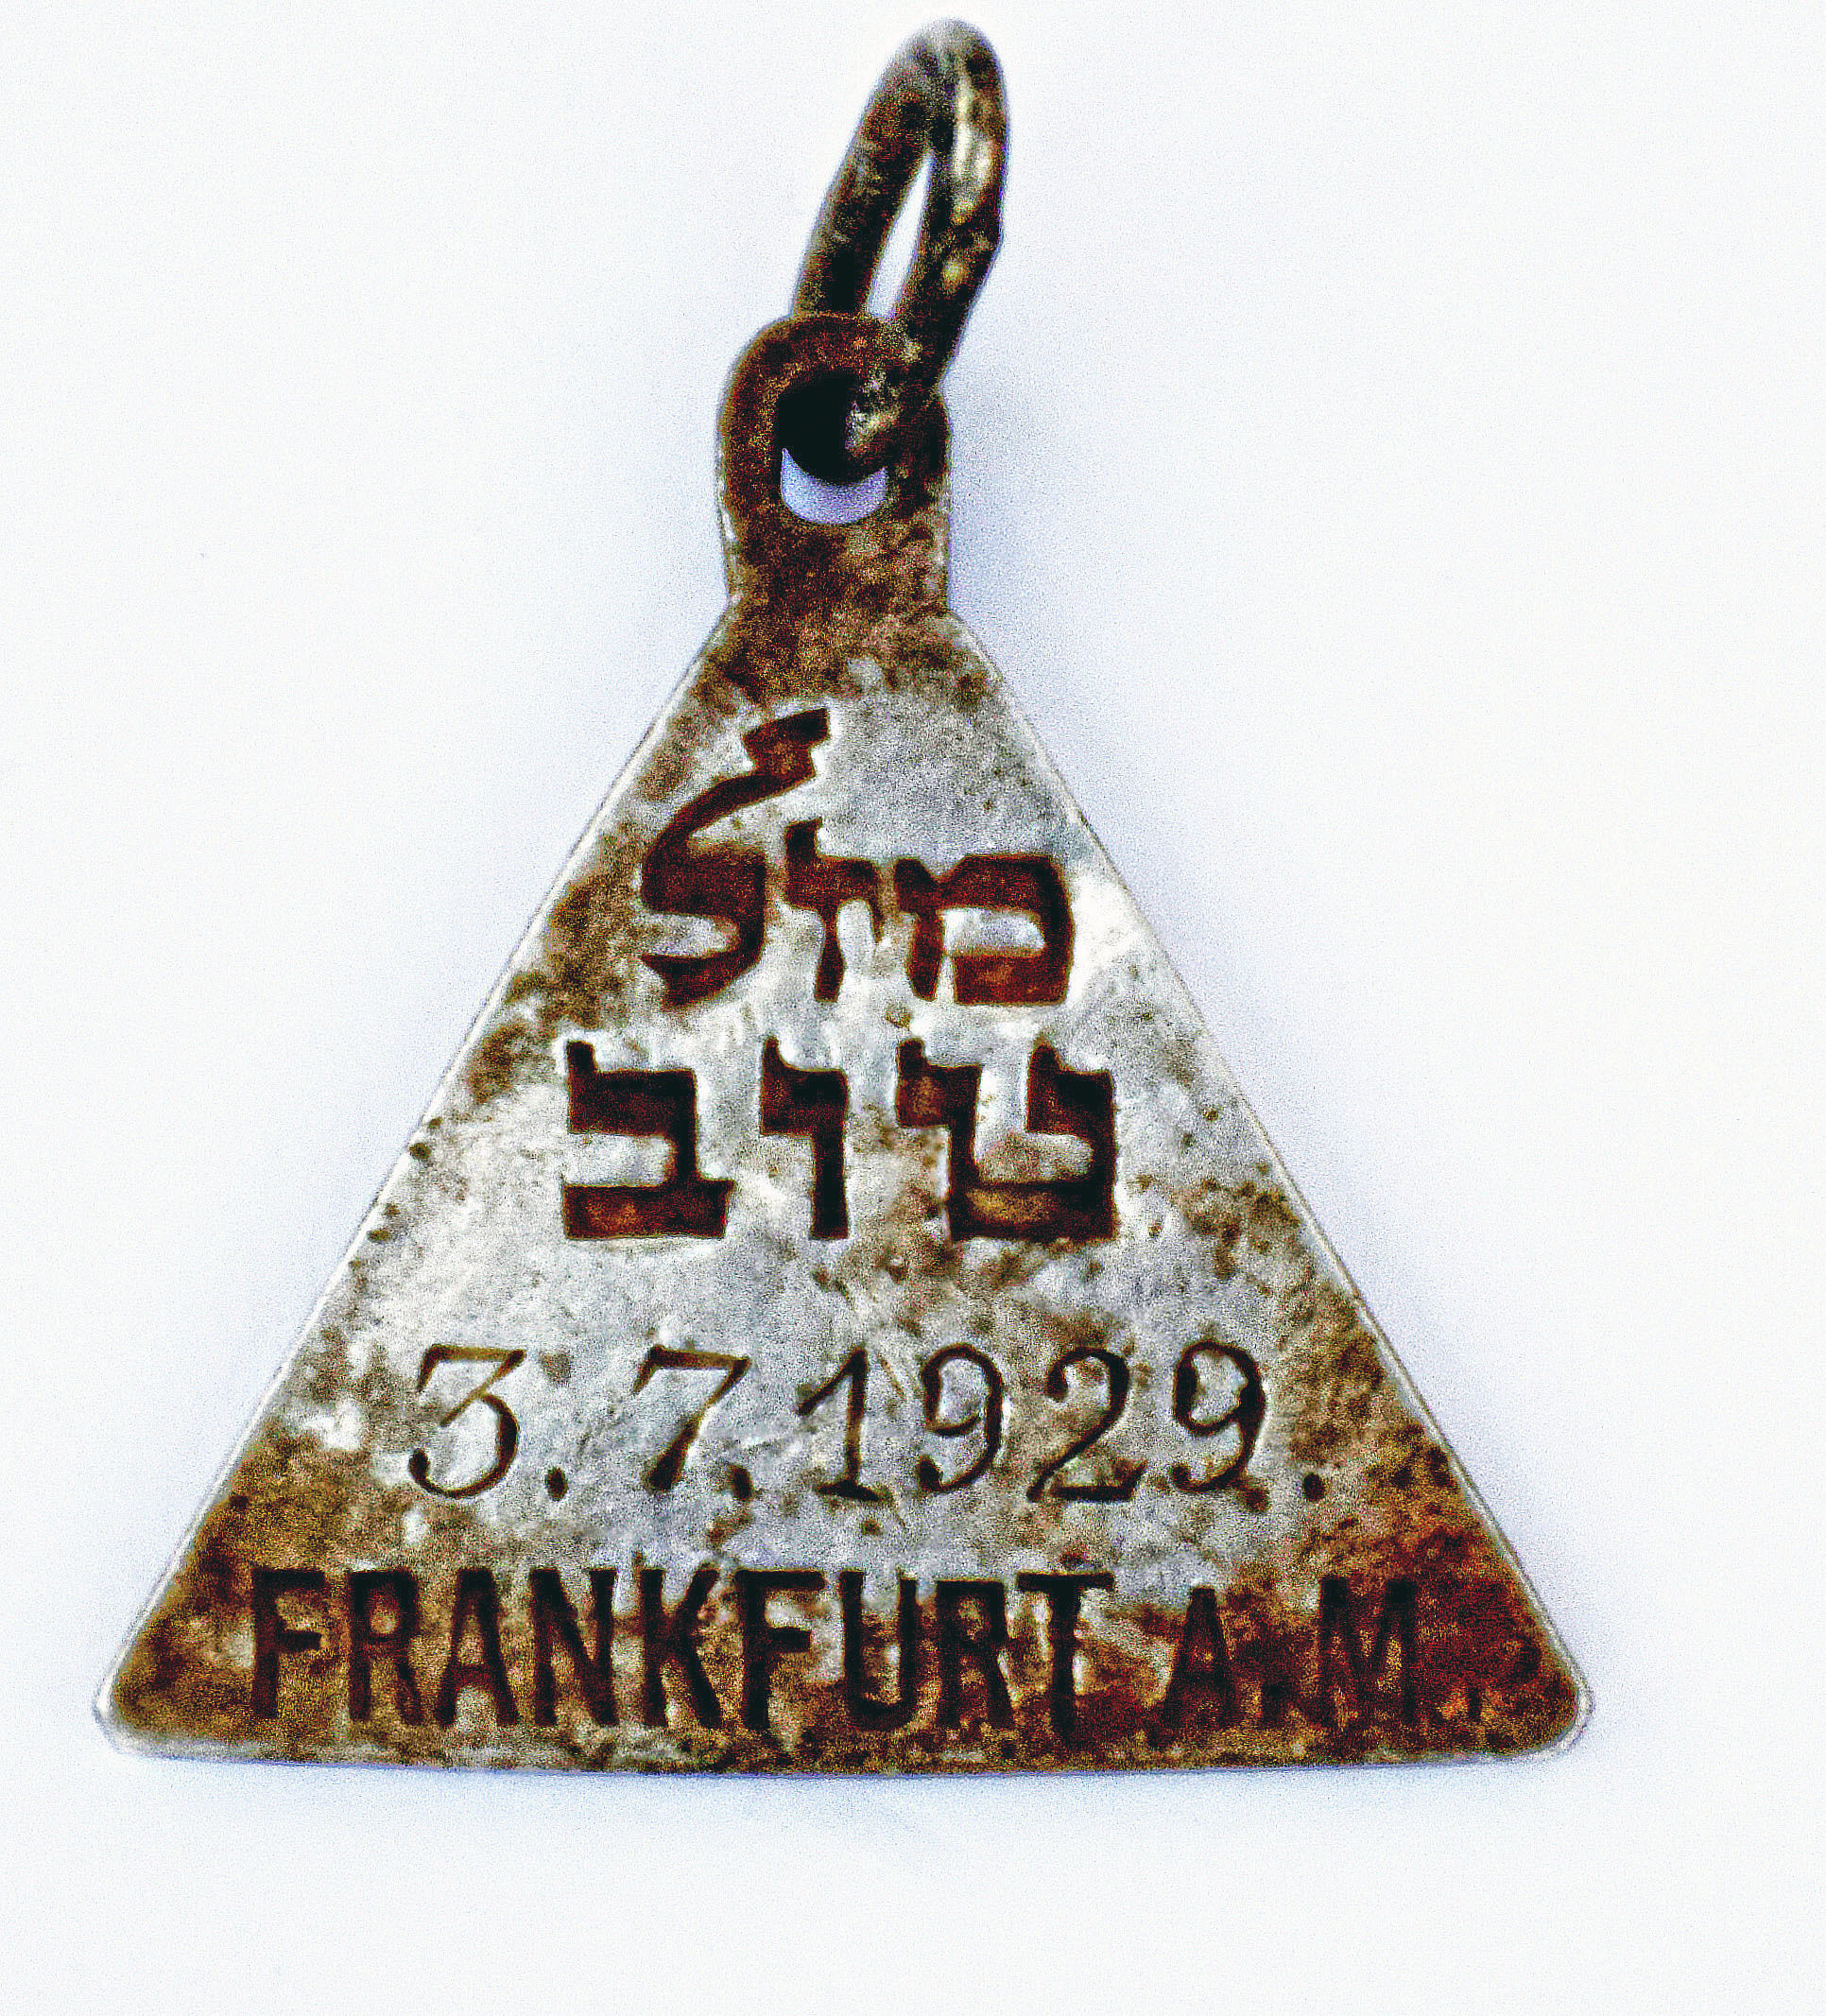 A pendant that appears identical to one belonging to Anne Frank. (Yoram Haimi, Israel Antiquities Authority via AP)